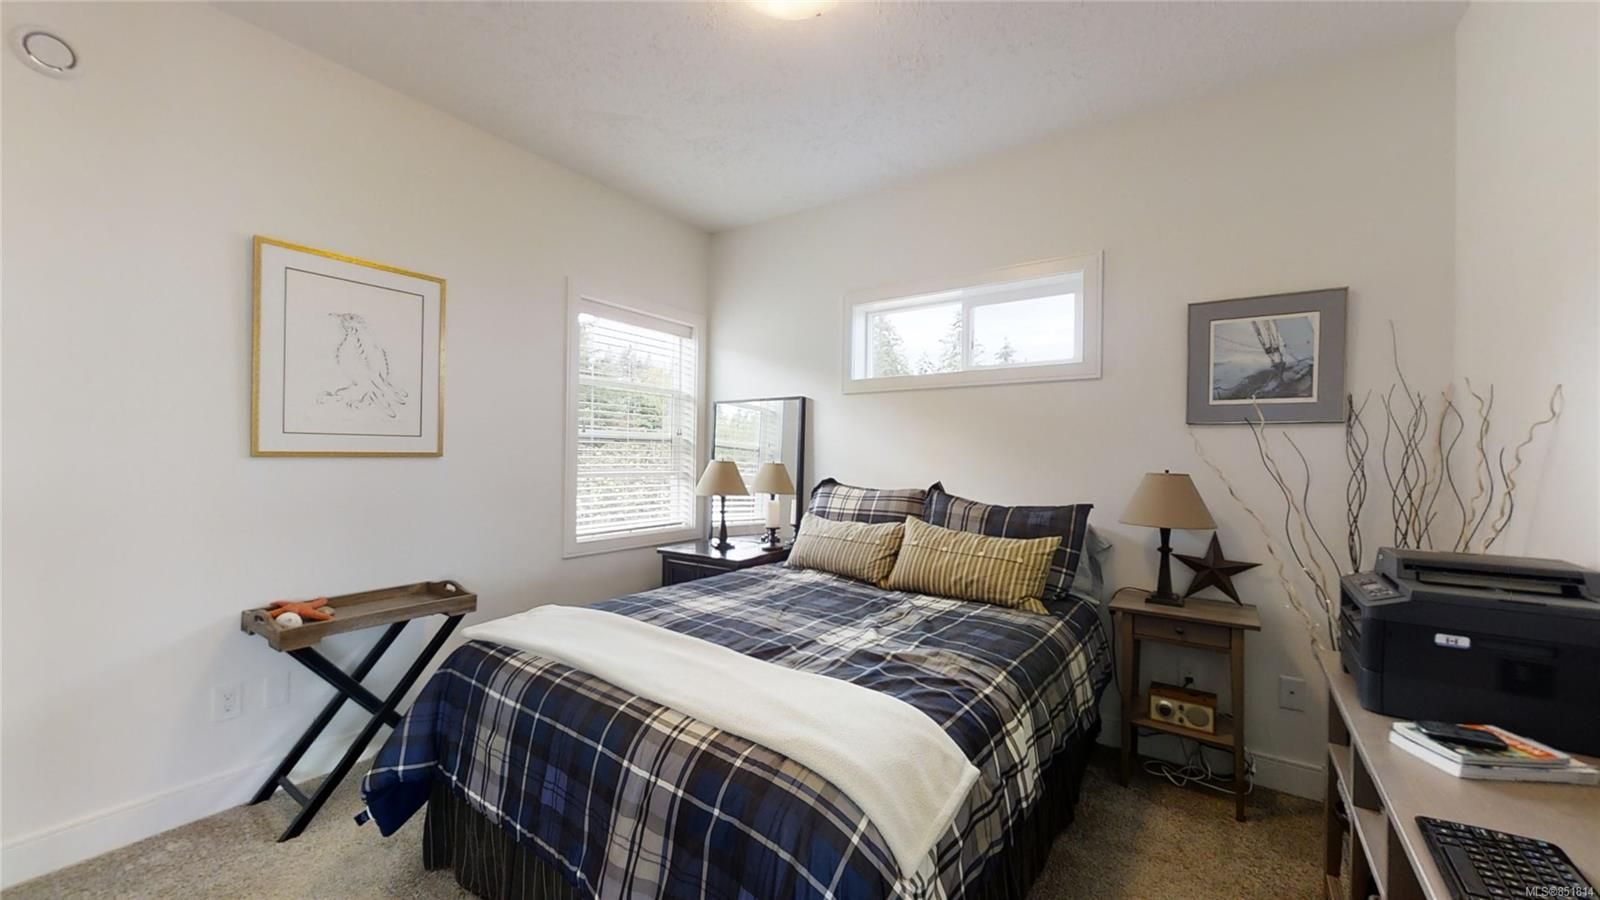 Photo 47: Photos: 191 Muschamp Rd in : CV Union Bay/Fanny Bay House for sale (Comox Valley)  : MLS®# 851814